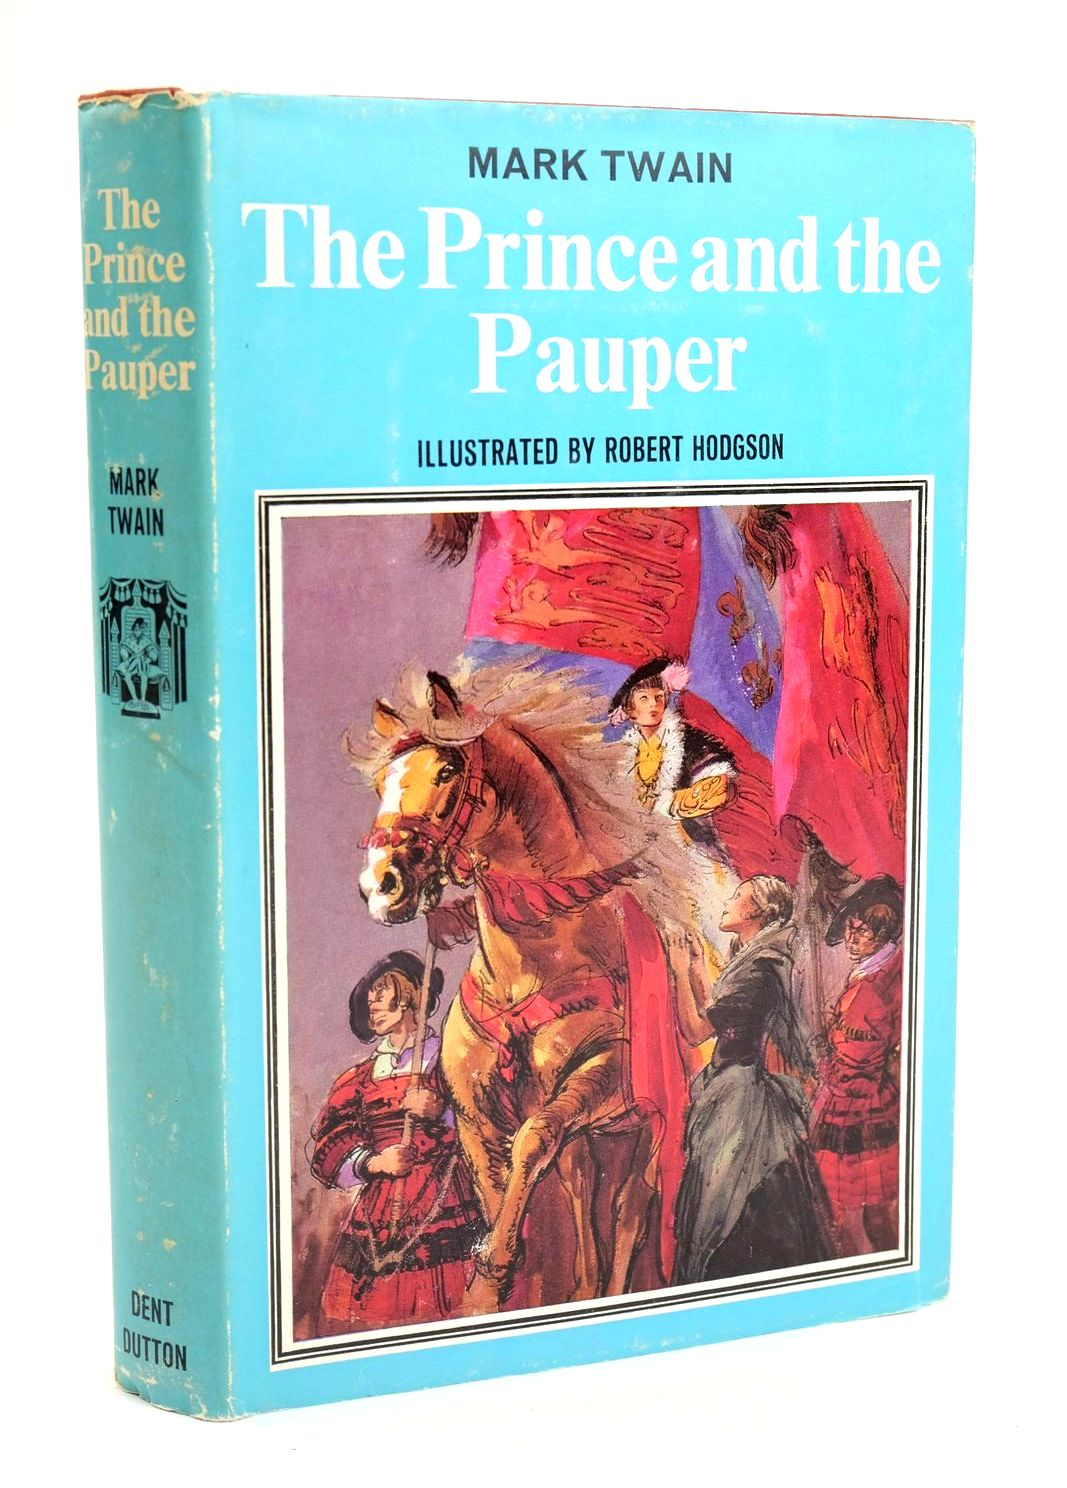 Photo of THE PRINCE AND THE PAUPER written by Twain, Mark illustrated by Hodgson, Robert published by J.M. Dent & Sons Ltd., E.P. Dutton & Co. Inc. (STOCK CODE: 1319250)  for sale by Stella & Rose's Books